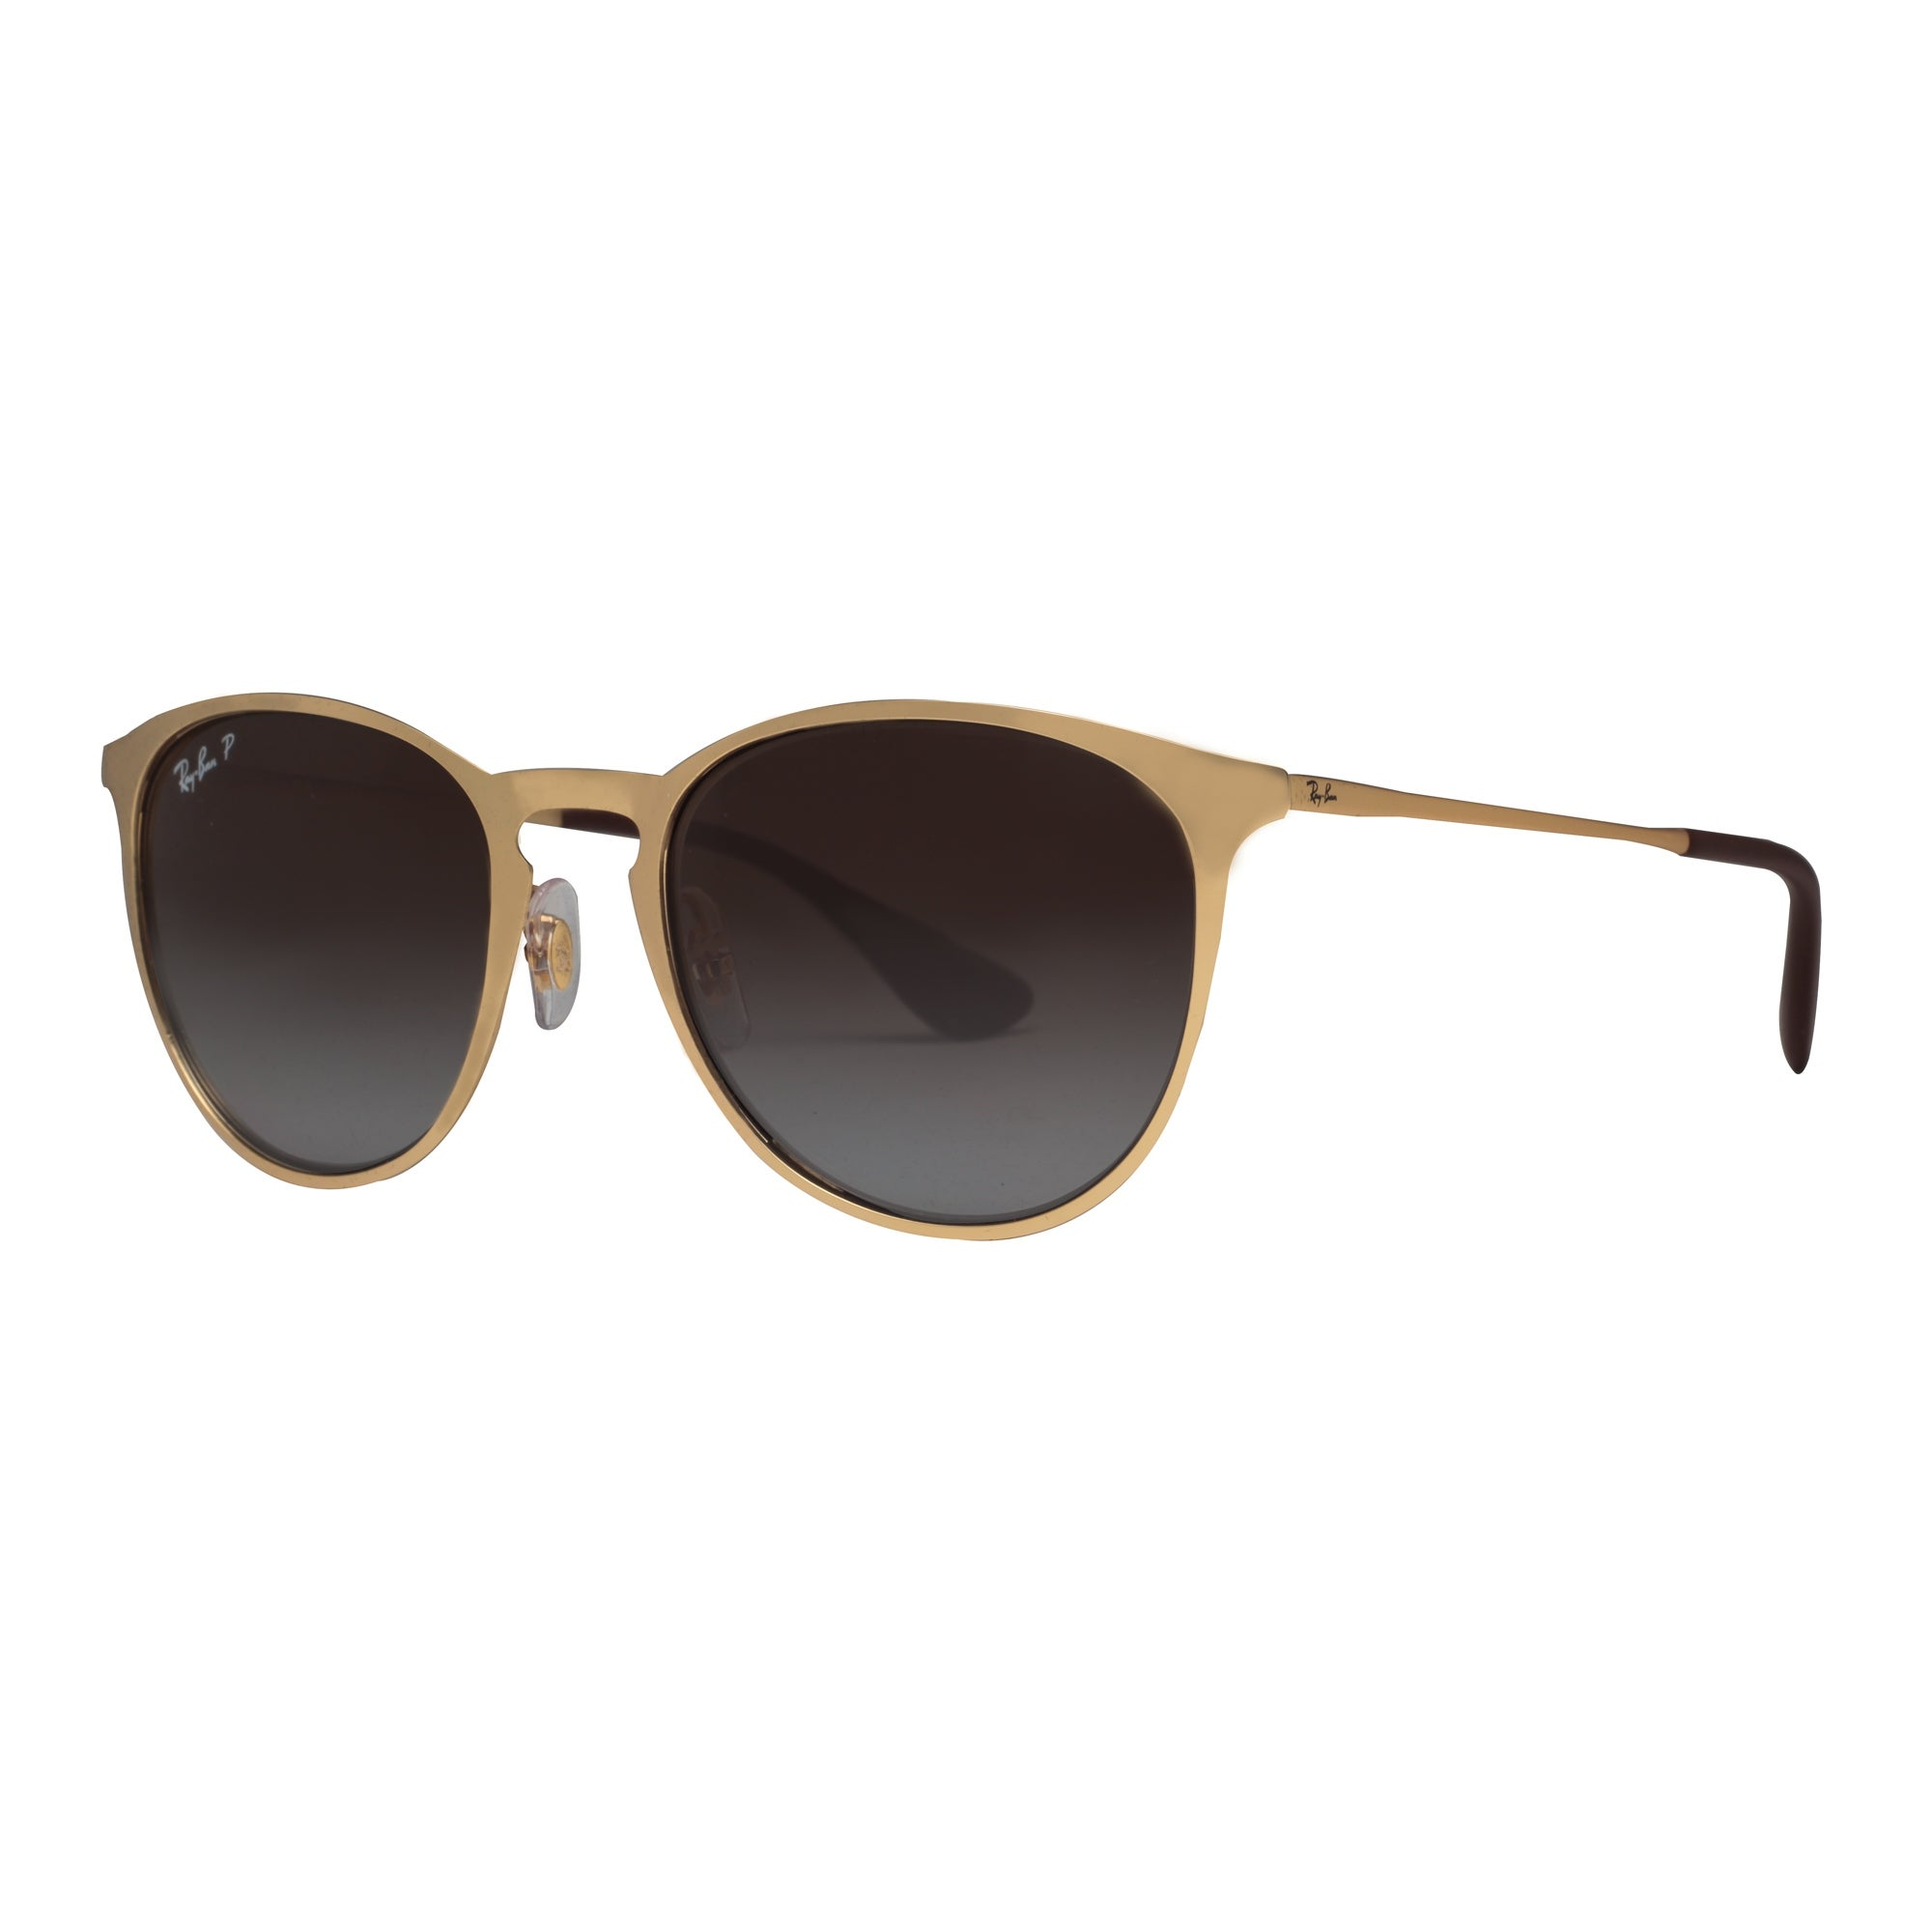 37295ec6379 Ray Ban RB3539 112 T5 Erika Metal Gold Polarized Brown Gradient Round  Sunglasses - 54mm-19mm-145mm